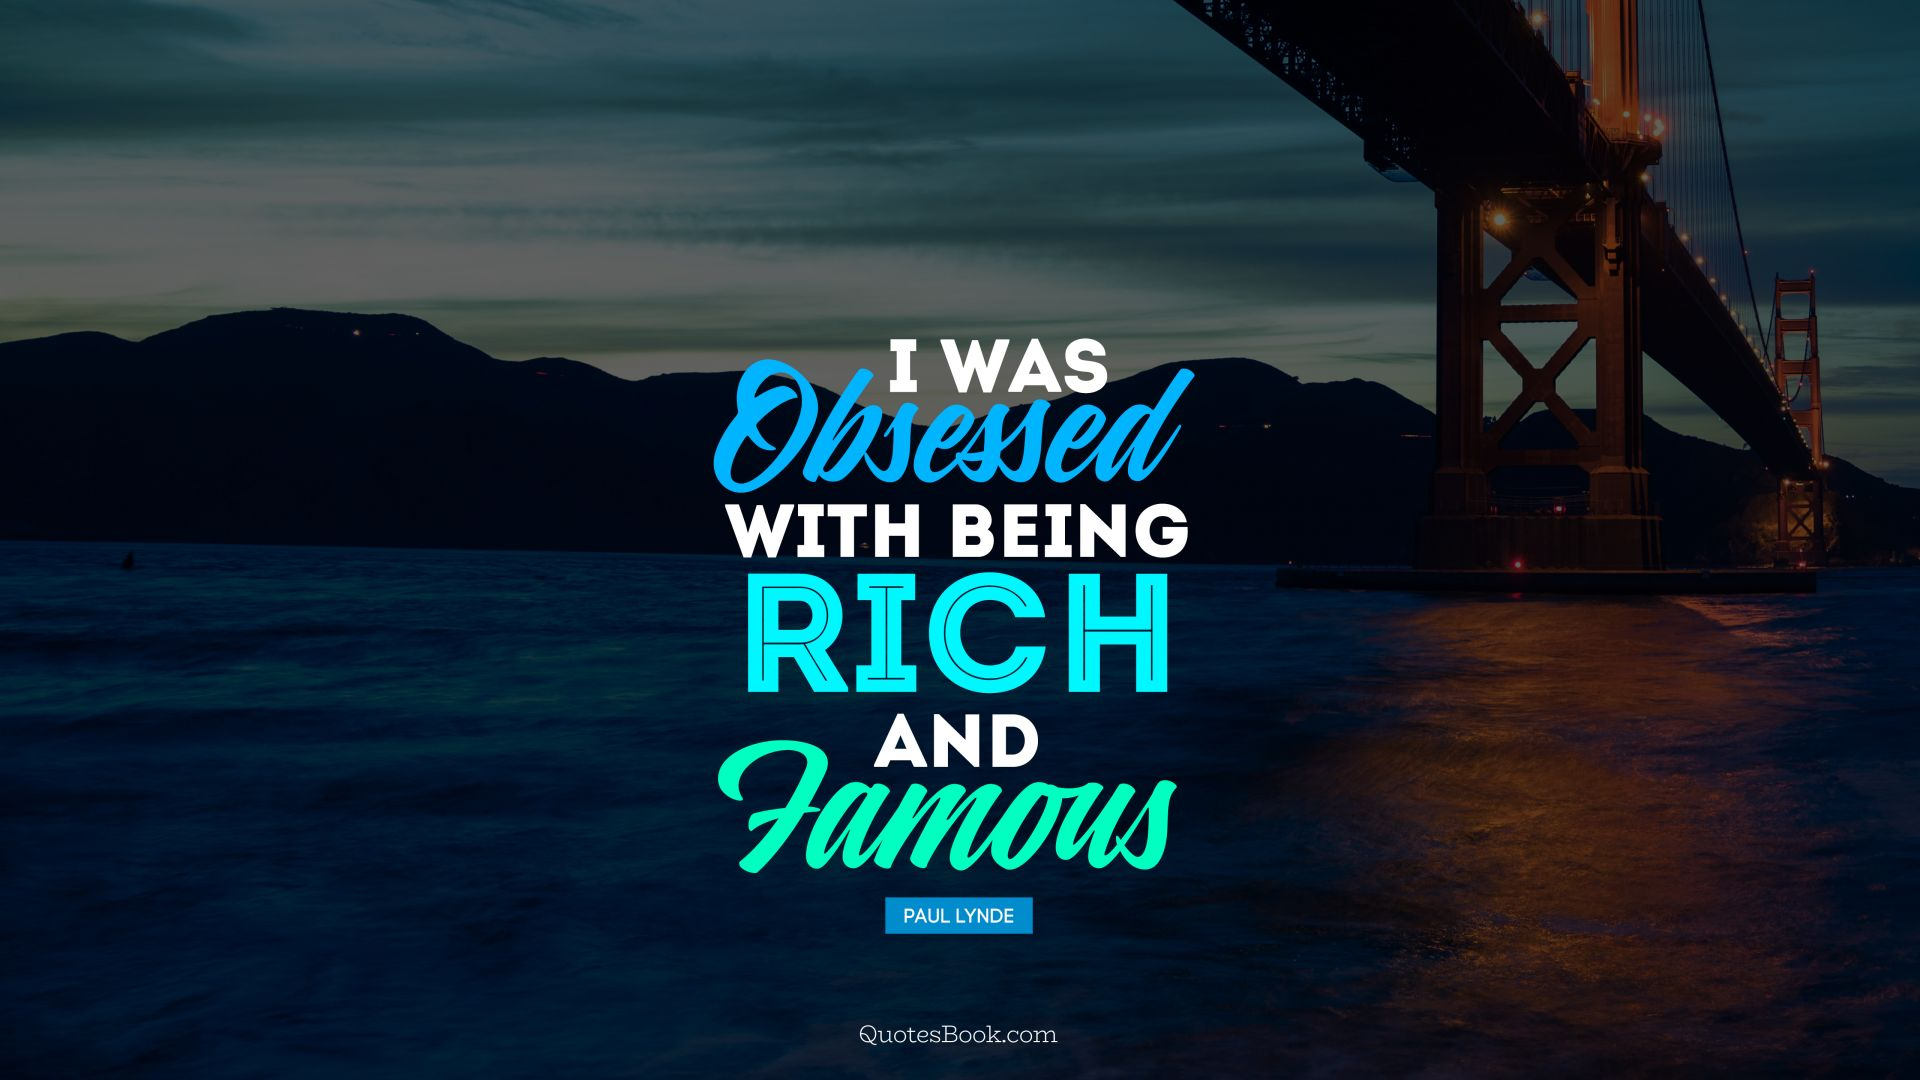 I was obsessed with being rich and famous. - Quote by Paul Lynde